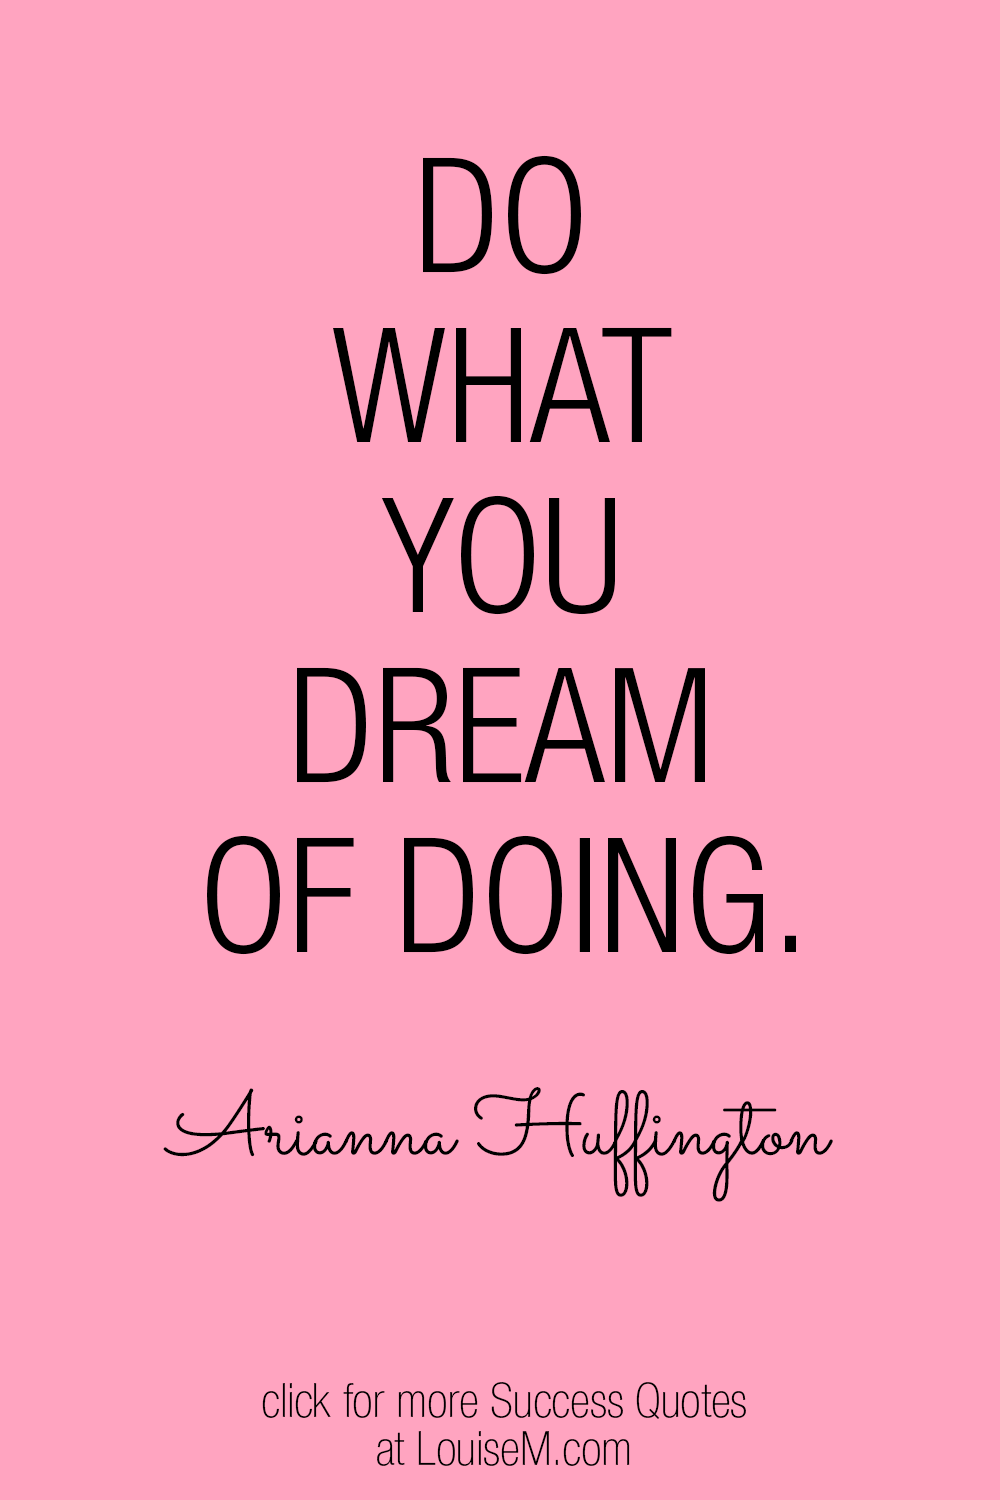 do what you dream of doing quote on pink background